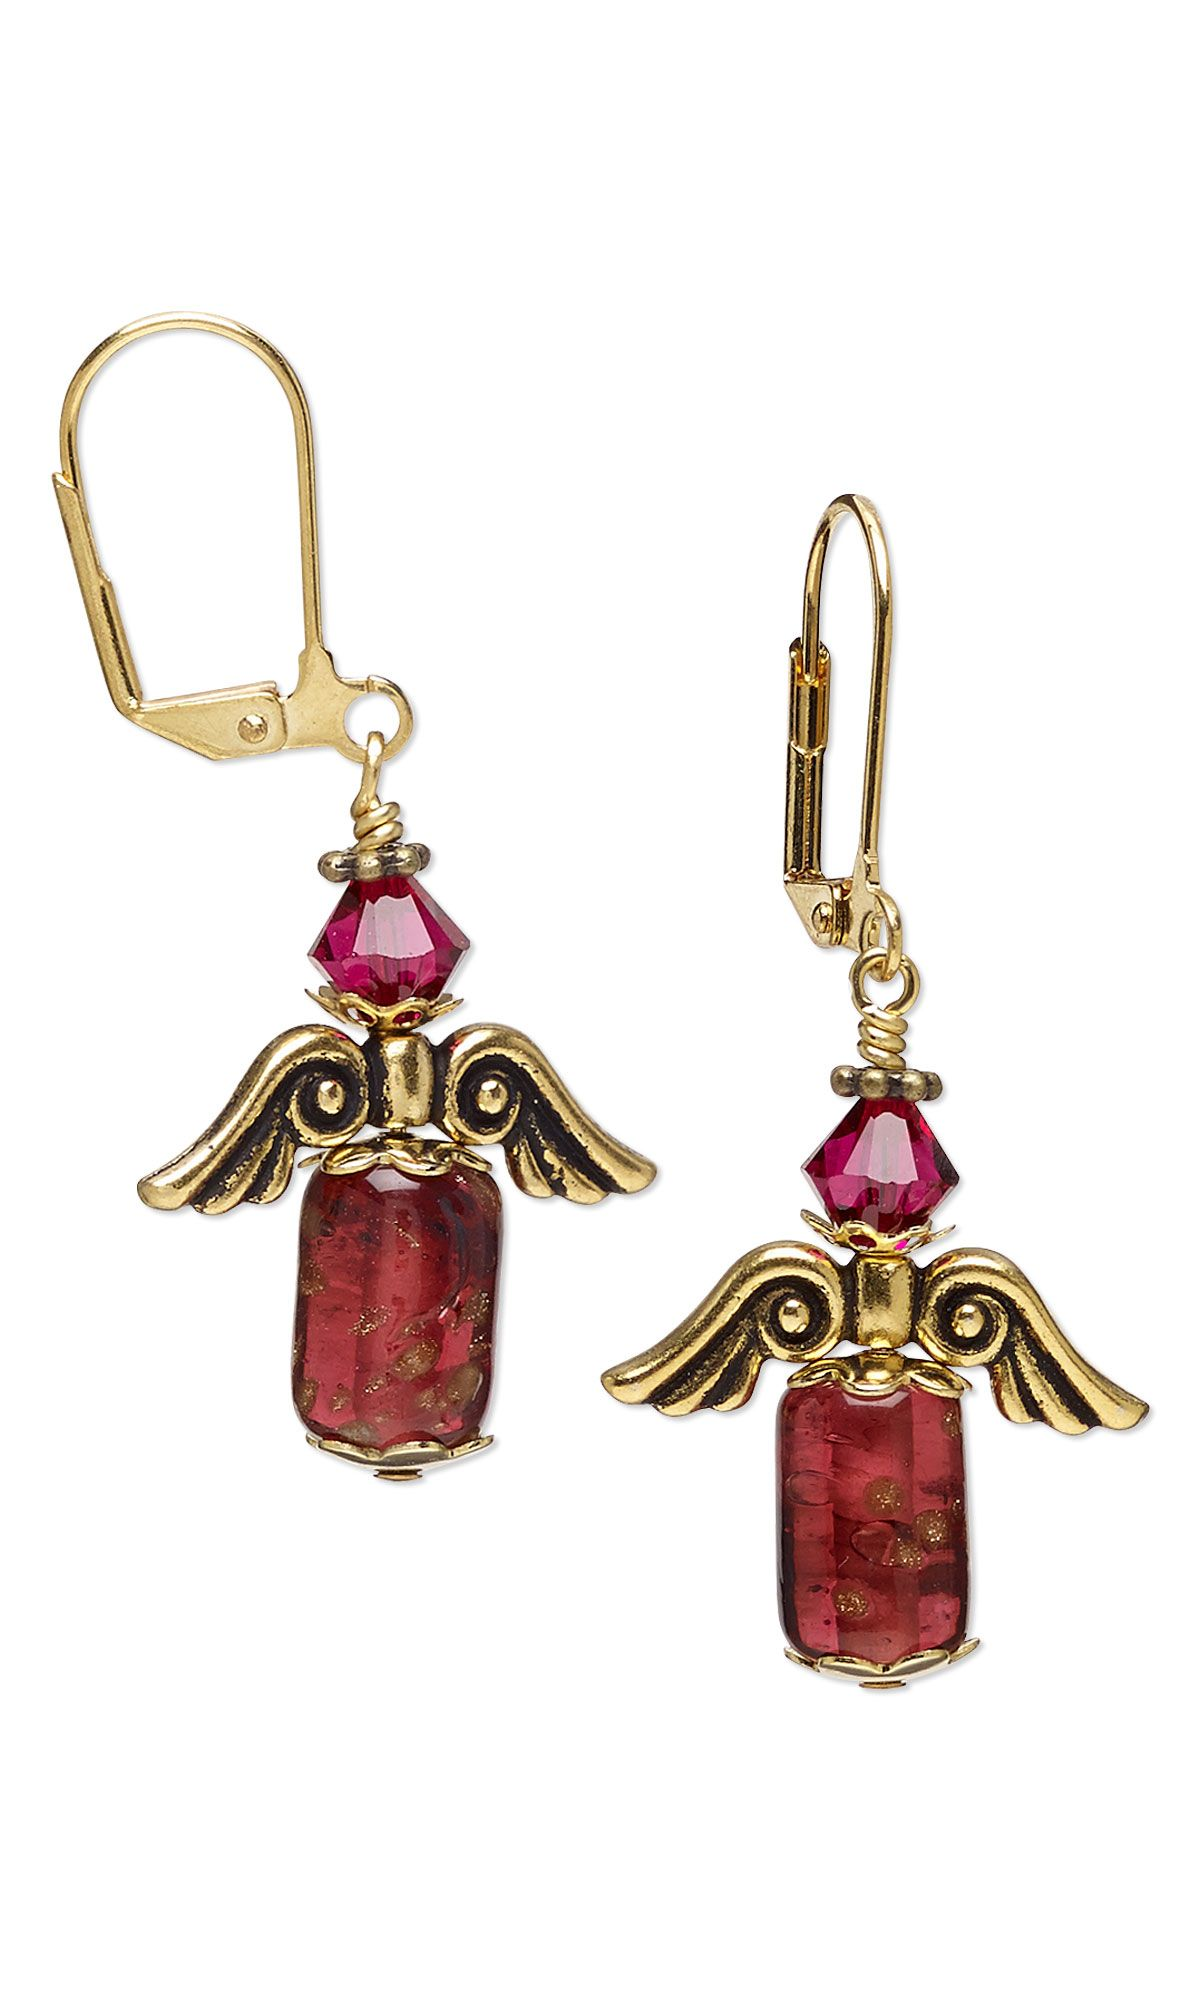 Jewelry Design - Earrings with Glass Beads, Antiqued Gold-Finished Pewter Beads and Swarovski Crystal - Fire Mountain Gems and Beads